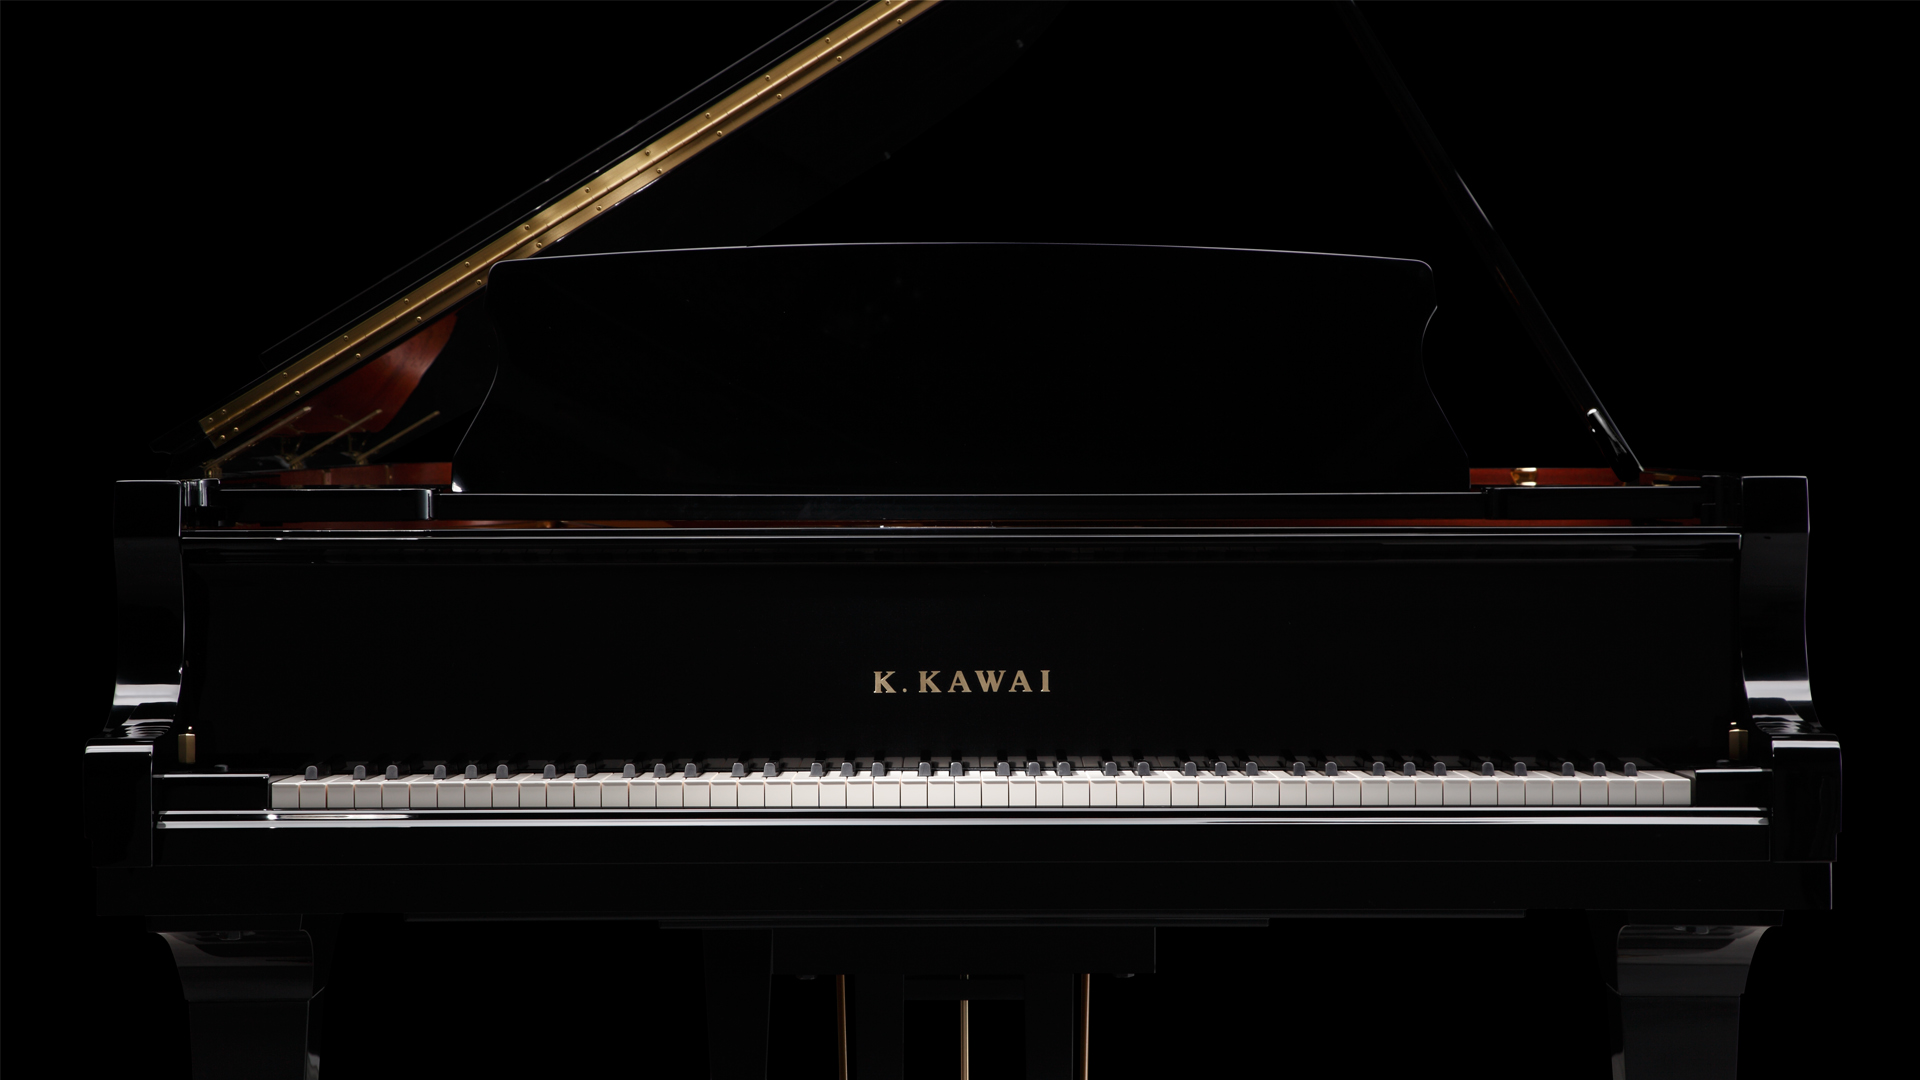 kawai,pianos,new,dorset,sale,uprights,grands